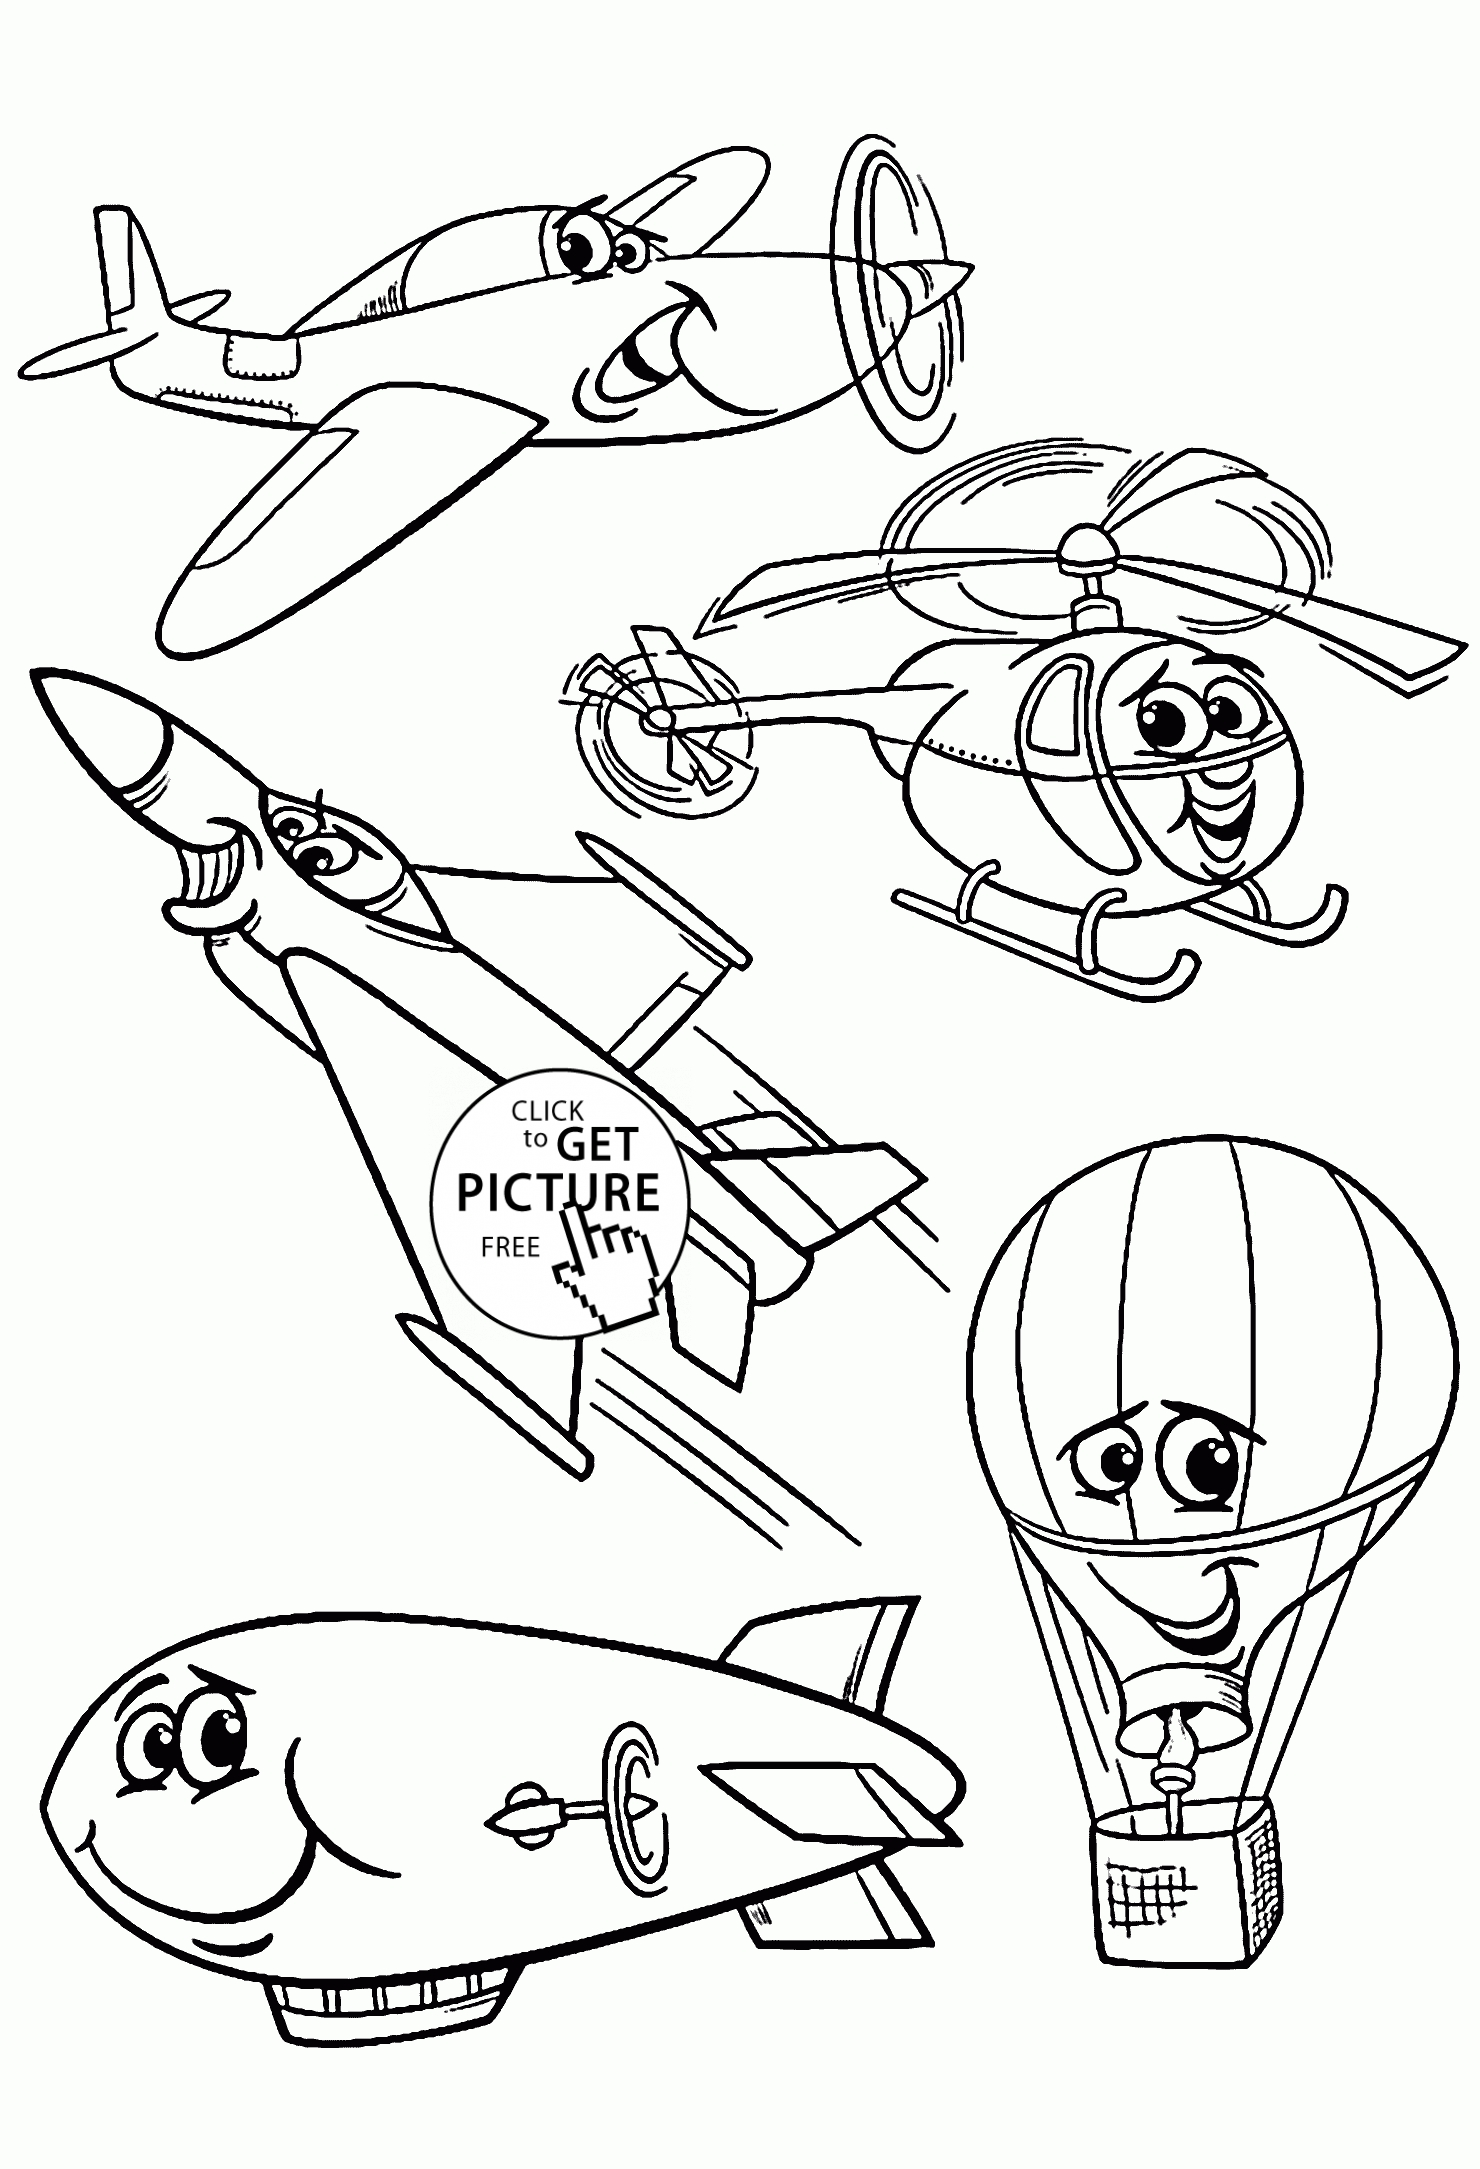 transportation coloring pages - cartoon air vehicles coloring page for kids transportation coloring pages printables free